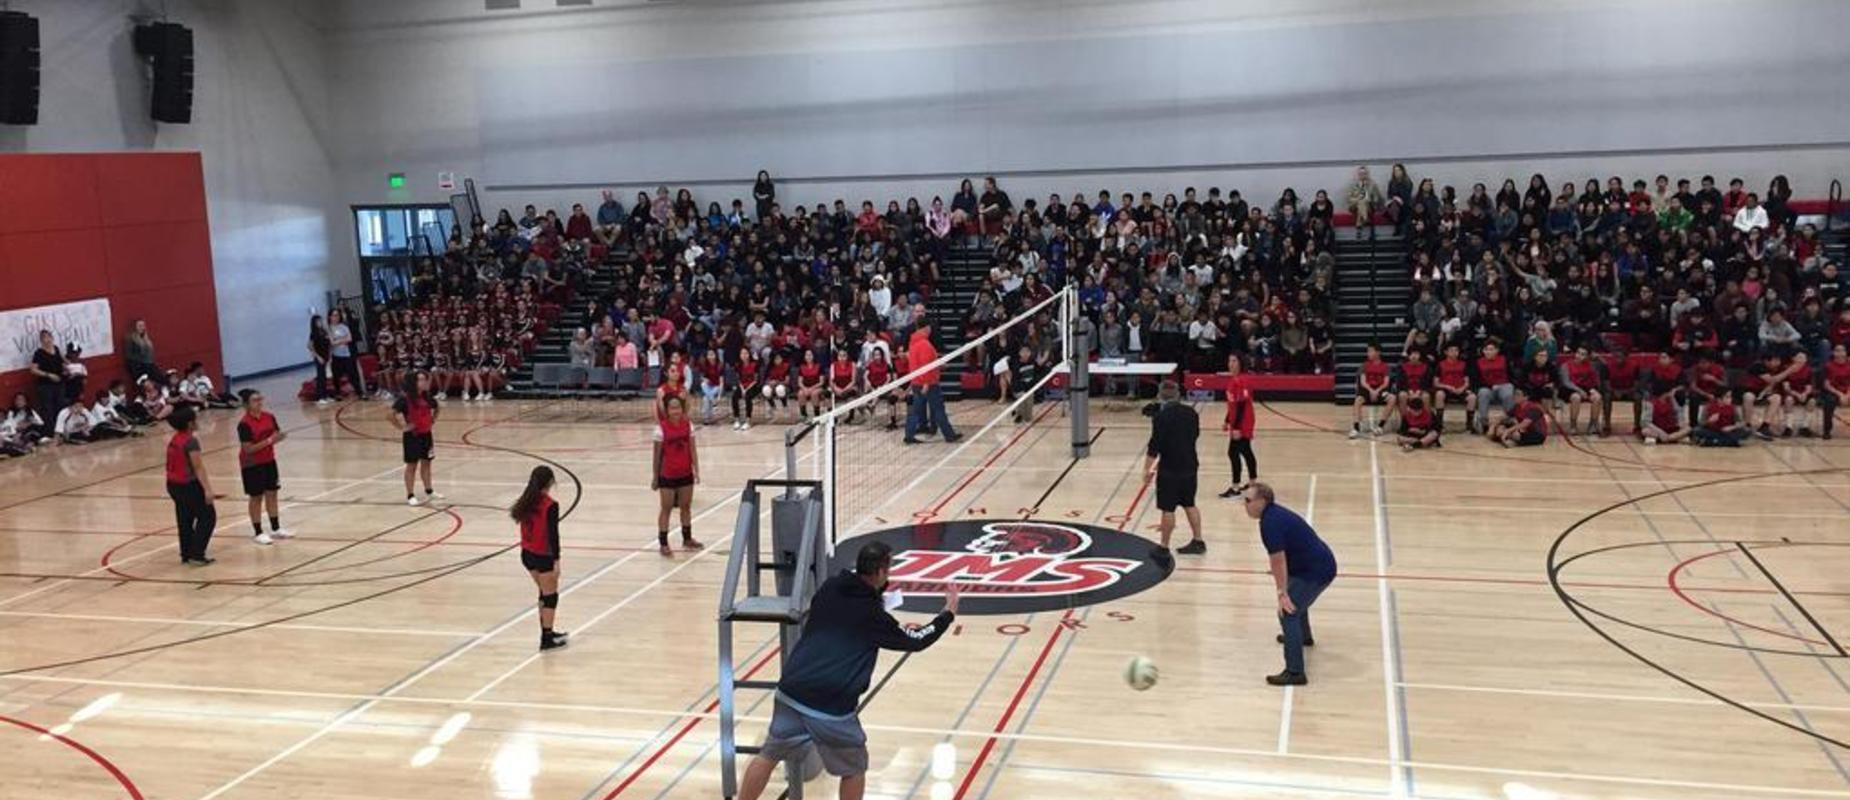 Teachers vs. Students Pep Rally